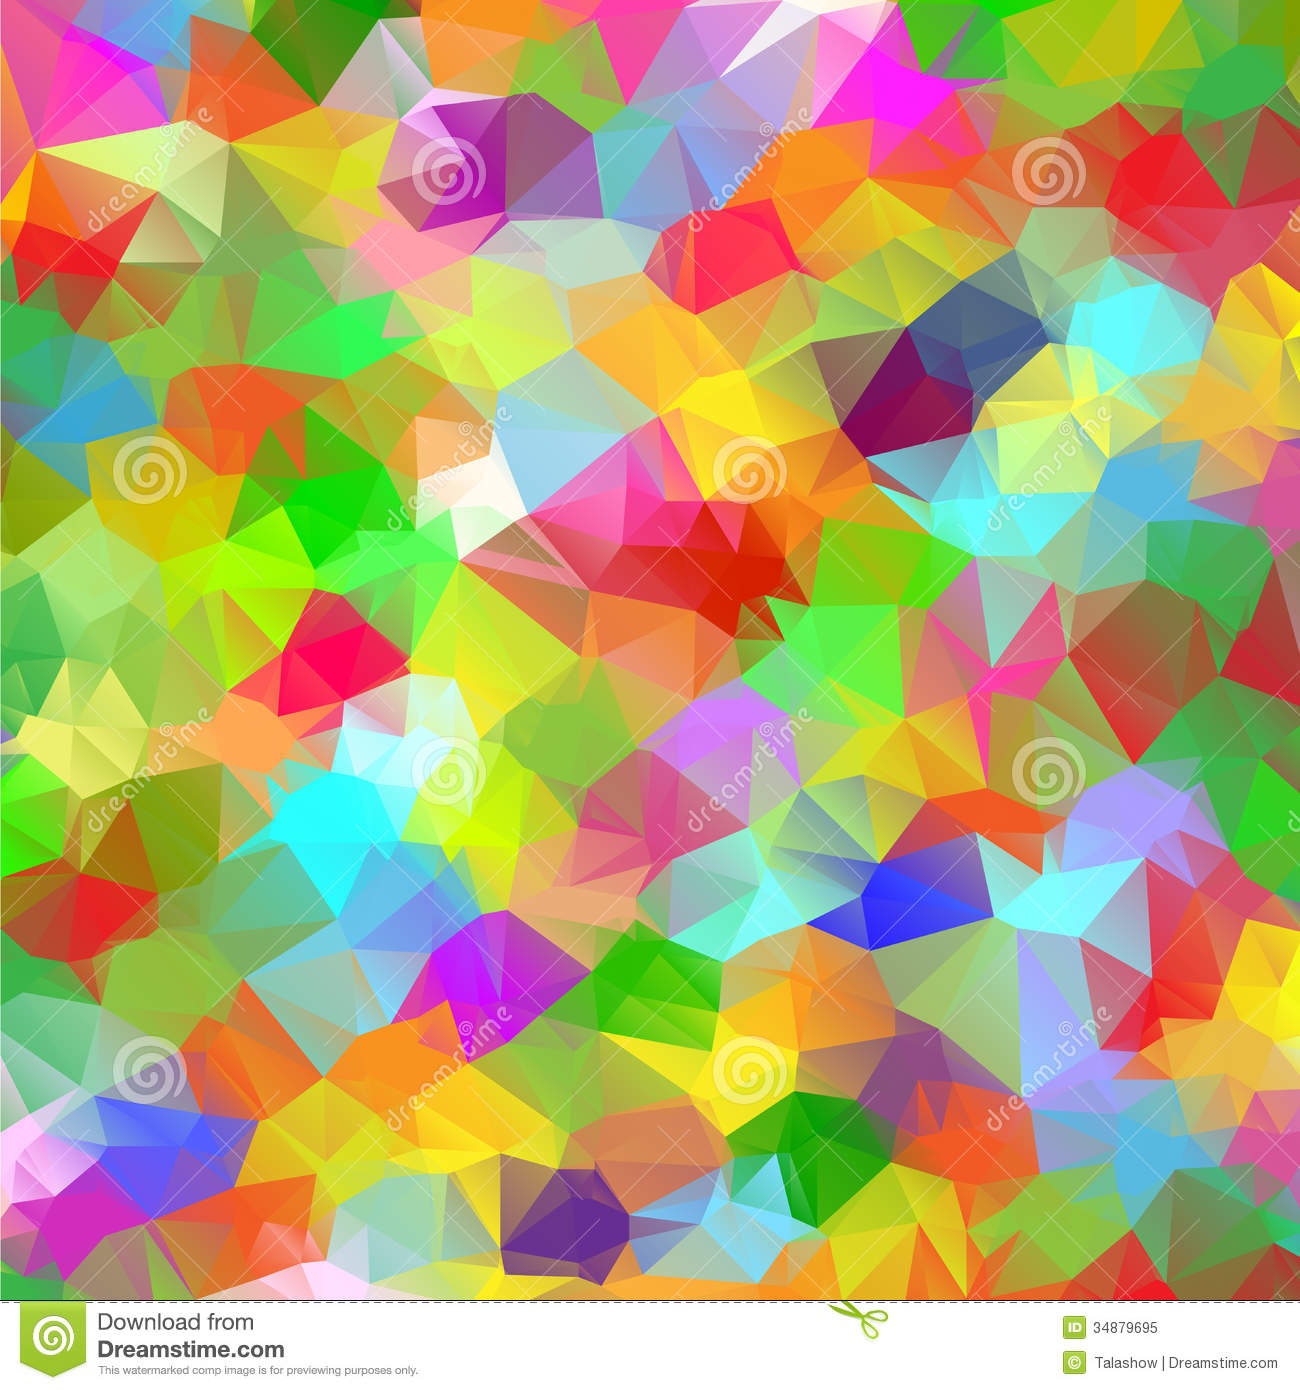 abstract polygonal colorful background - photo #4